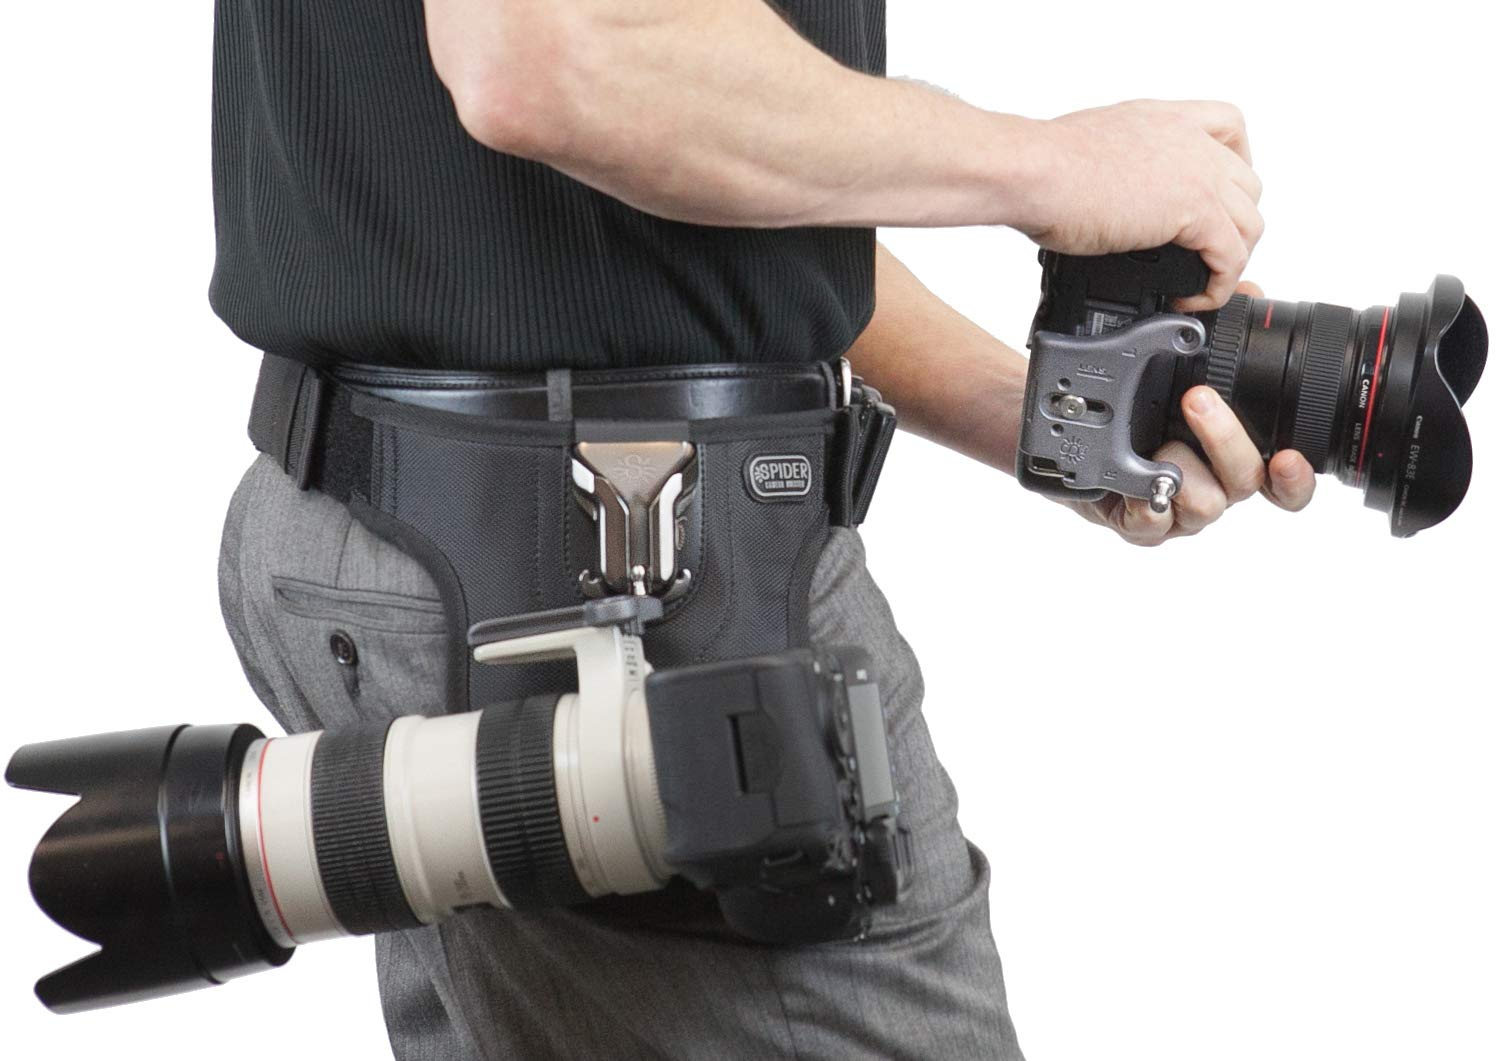 Spider Camera Holster SpiderPro Dual Camera System v2 (DCS), Belt System with Holsters for Two DSLRs, and Camera Cleaning Bundle by SpiderHolster (Image #5)